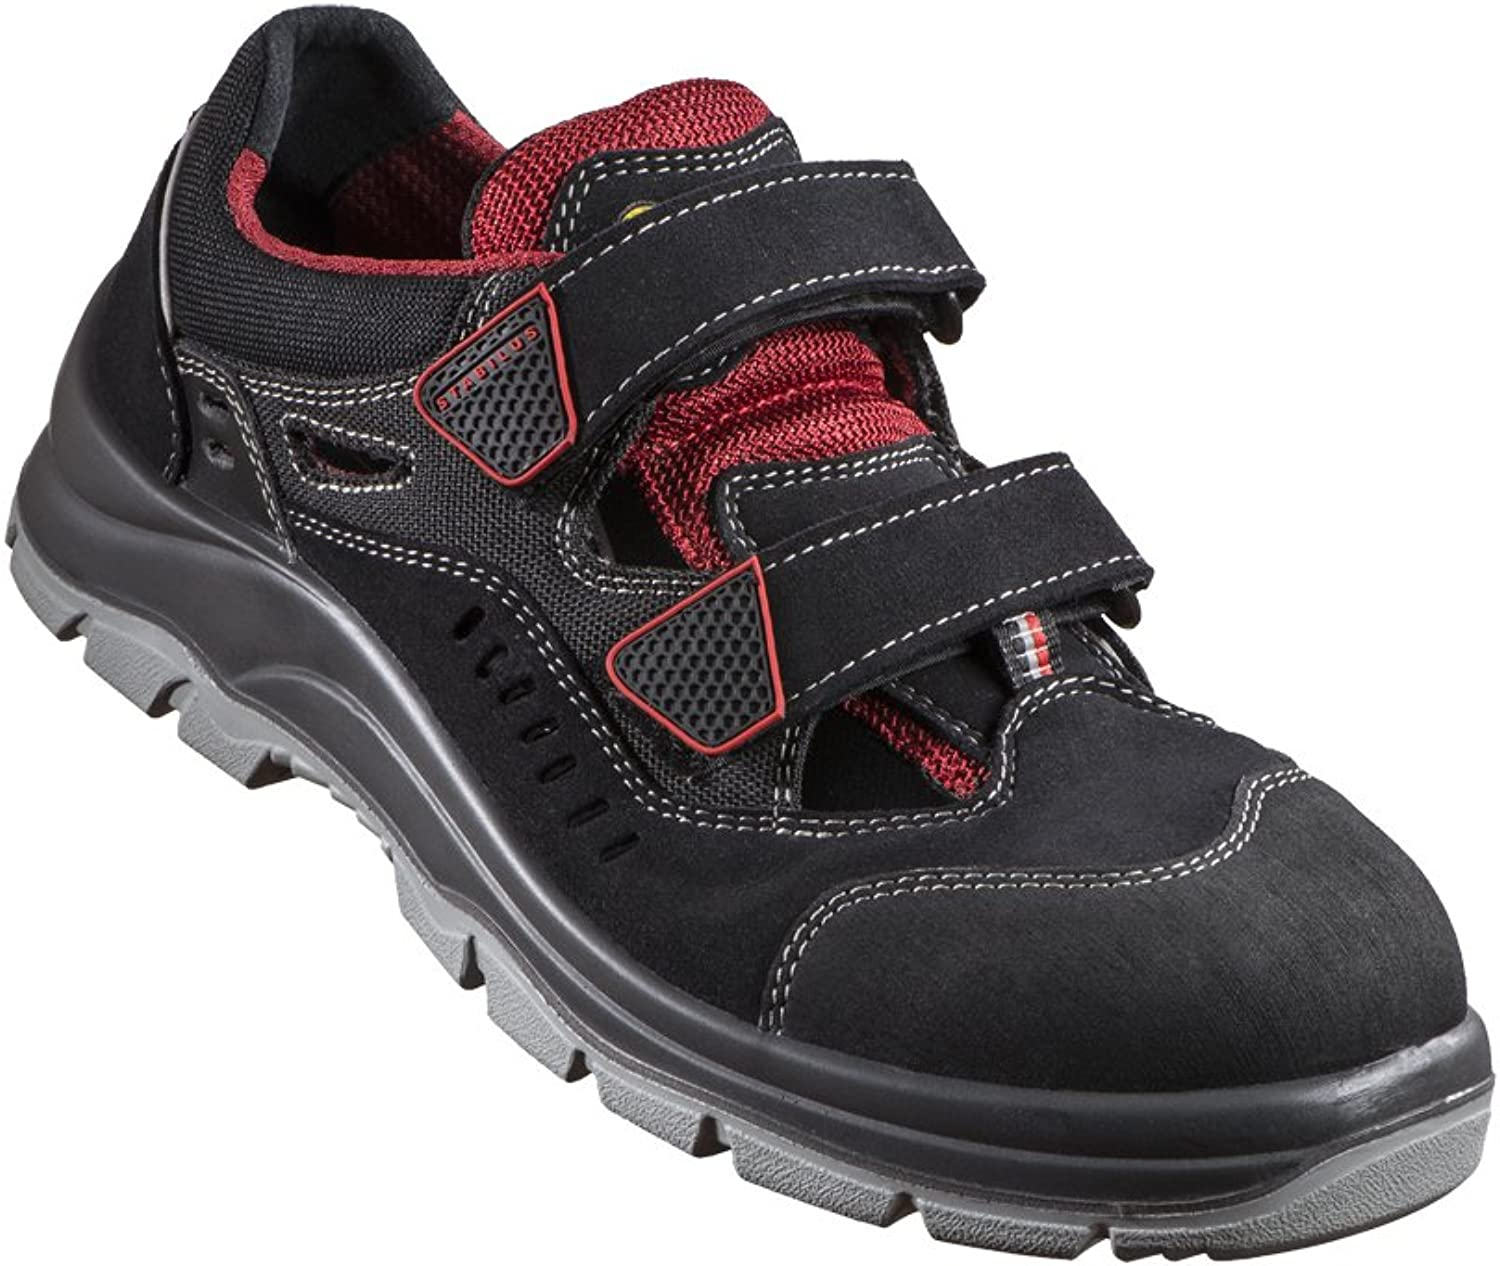 Stabilus Unisex Adults' 5124a Safety shoes